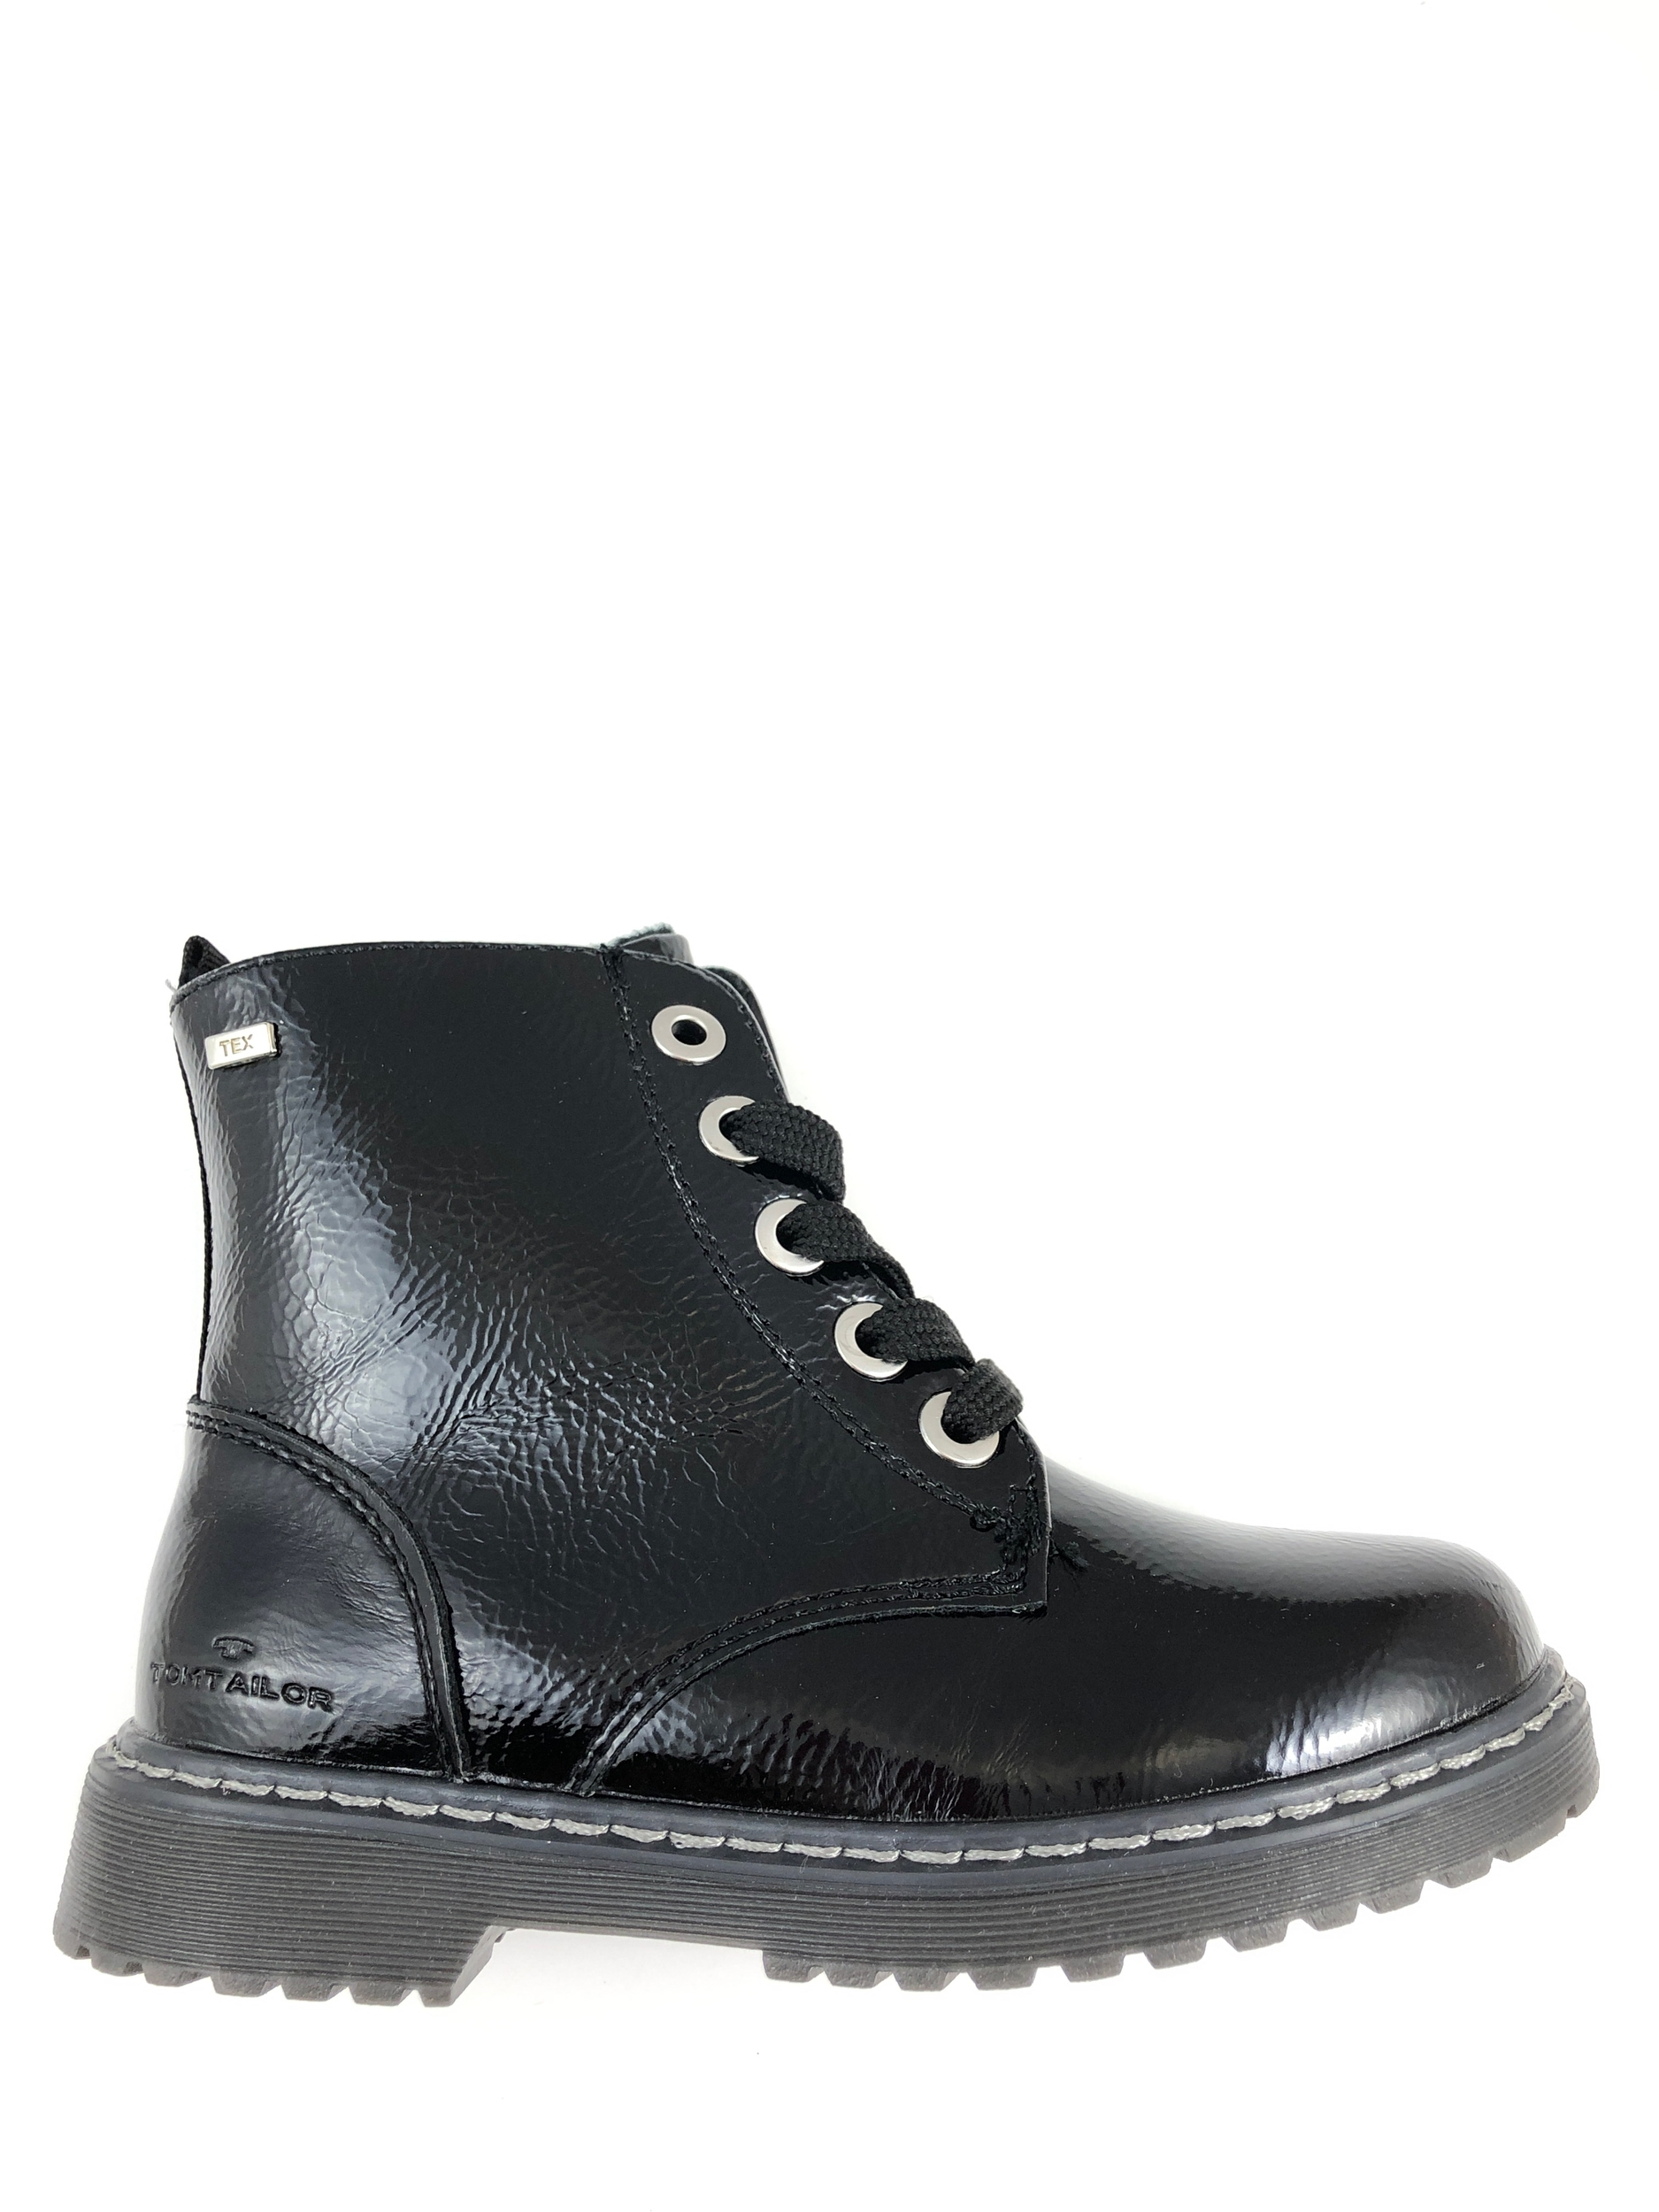 Bottines vernies noires à lacets